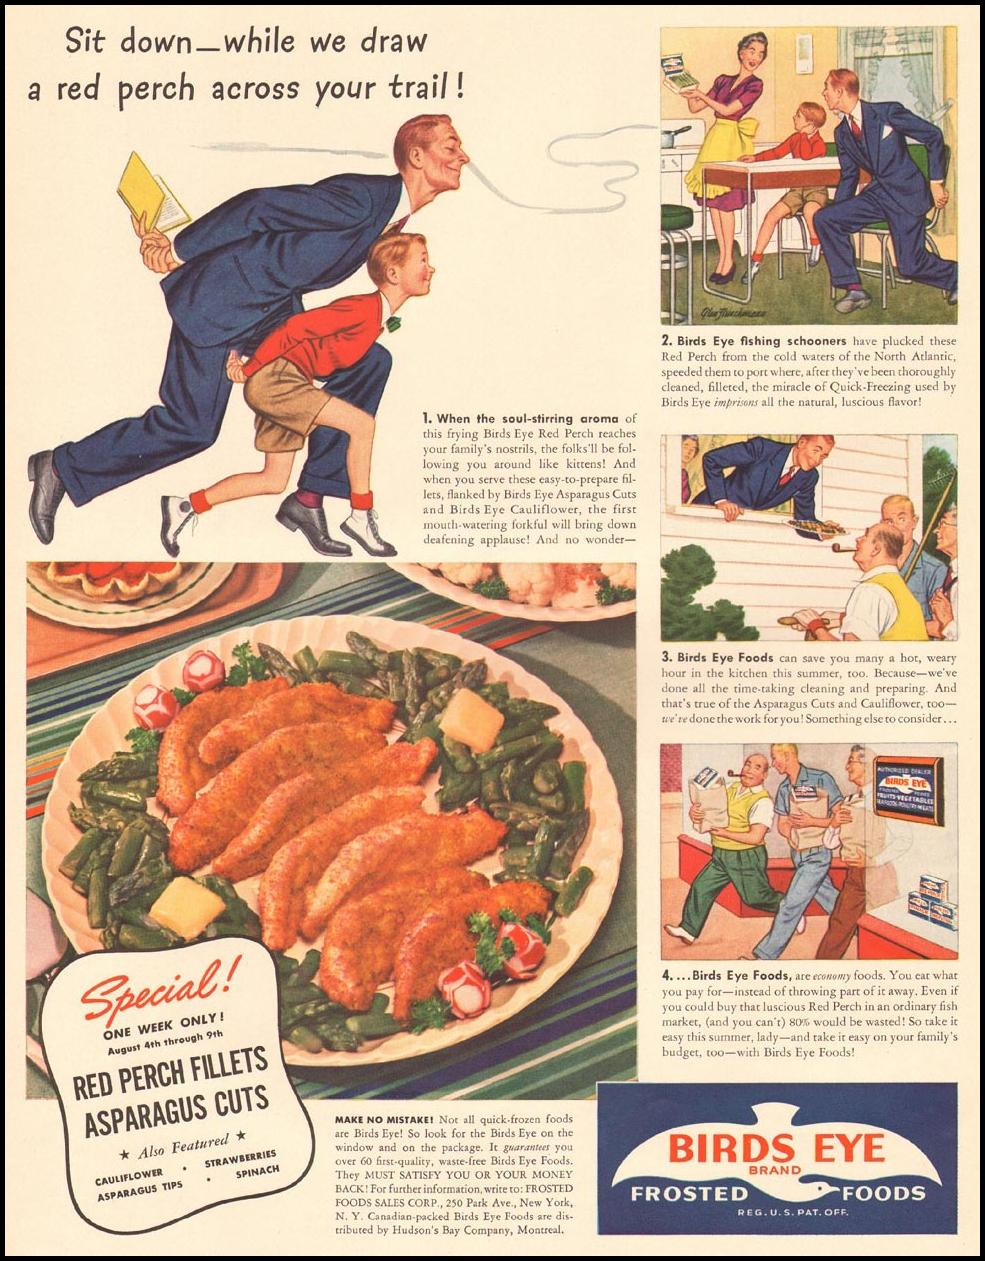 BIRDS EYE FROZEN FOODS LIFE 08/04/1941 p. 26